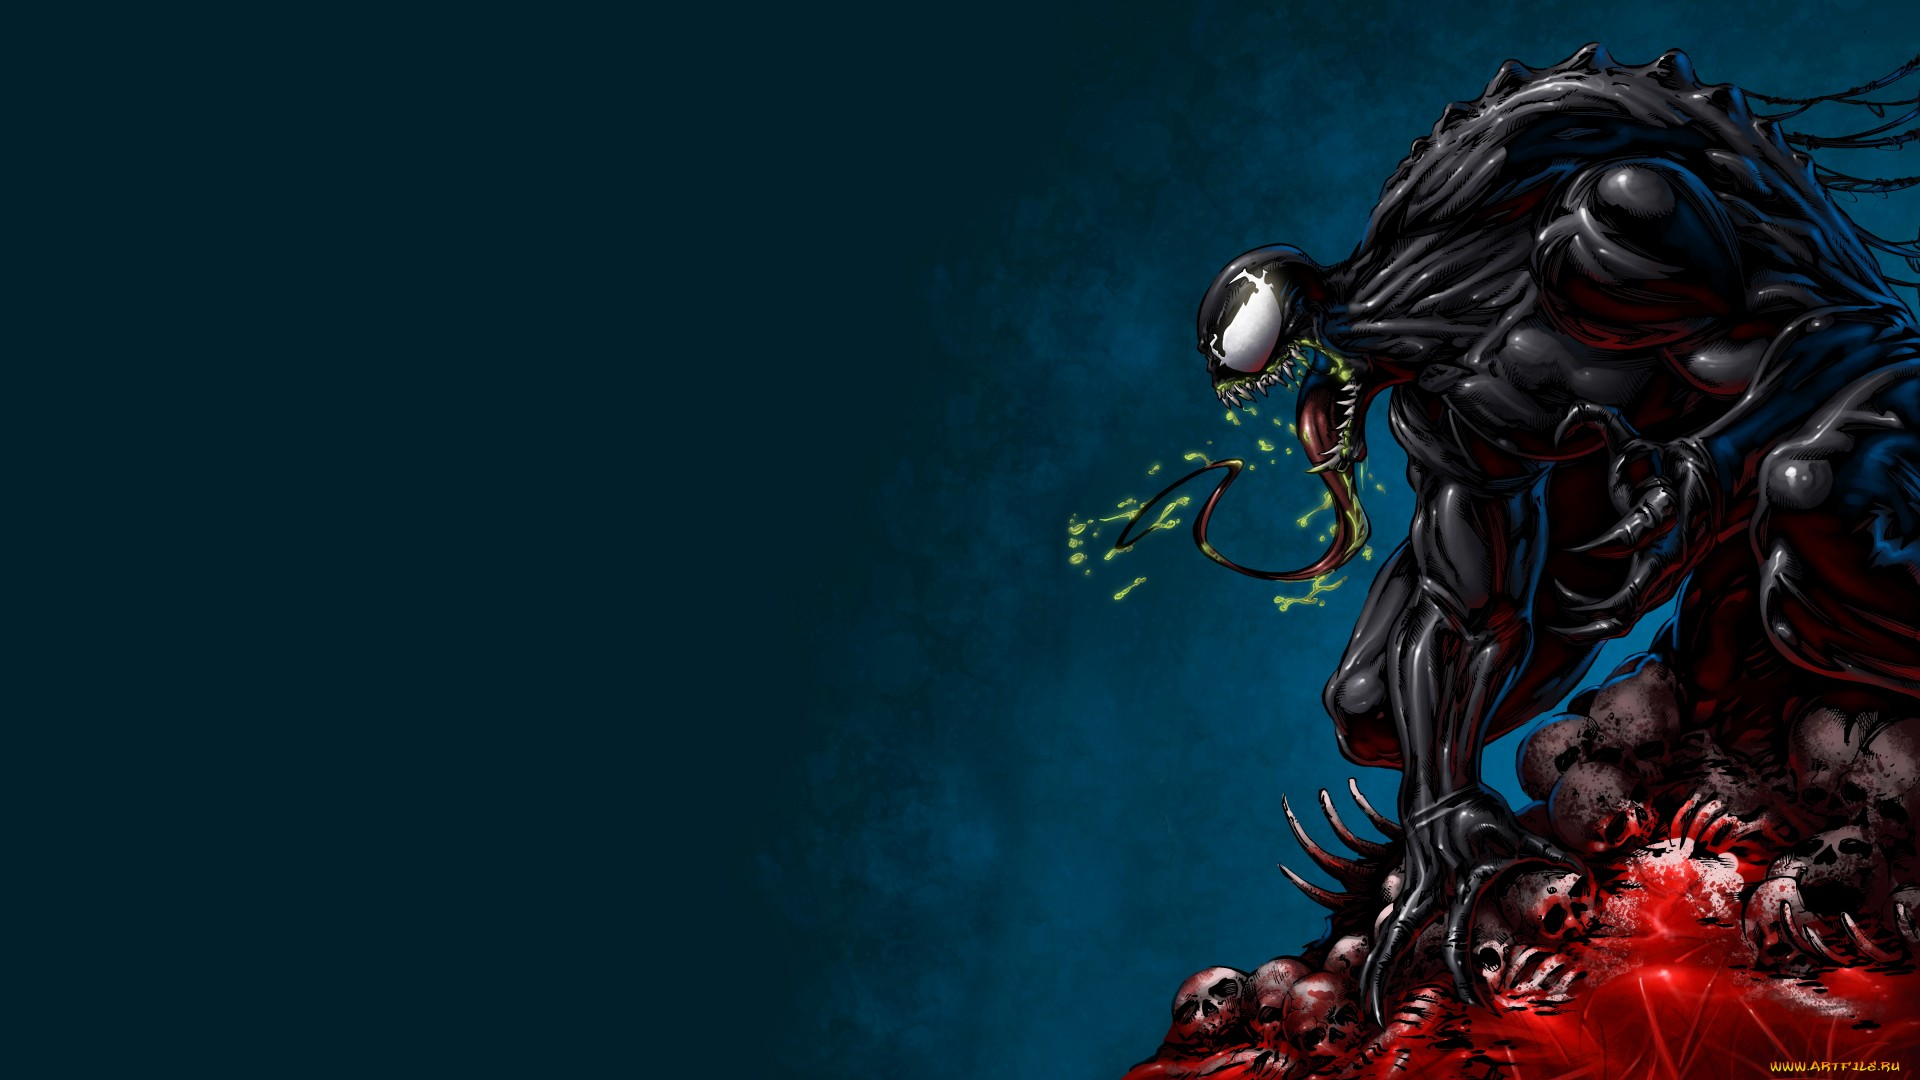 Venom HD Desktop Background